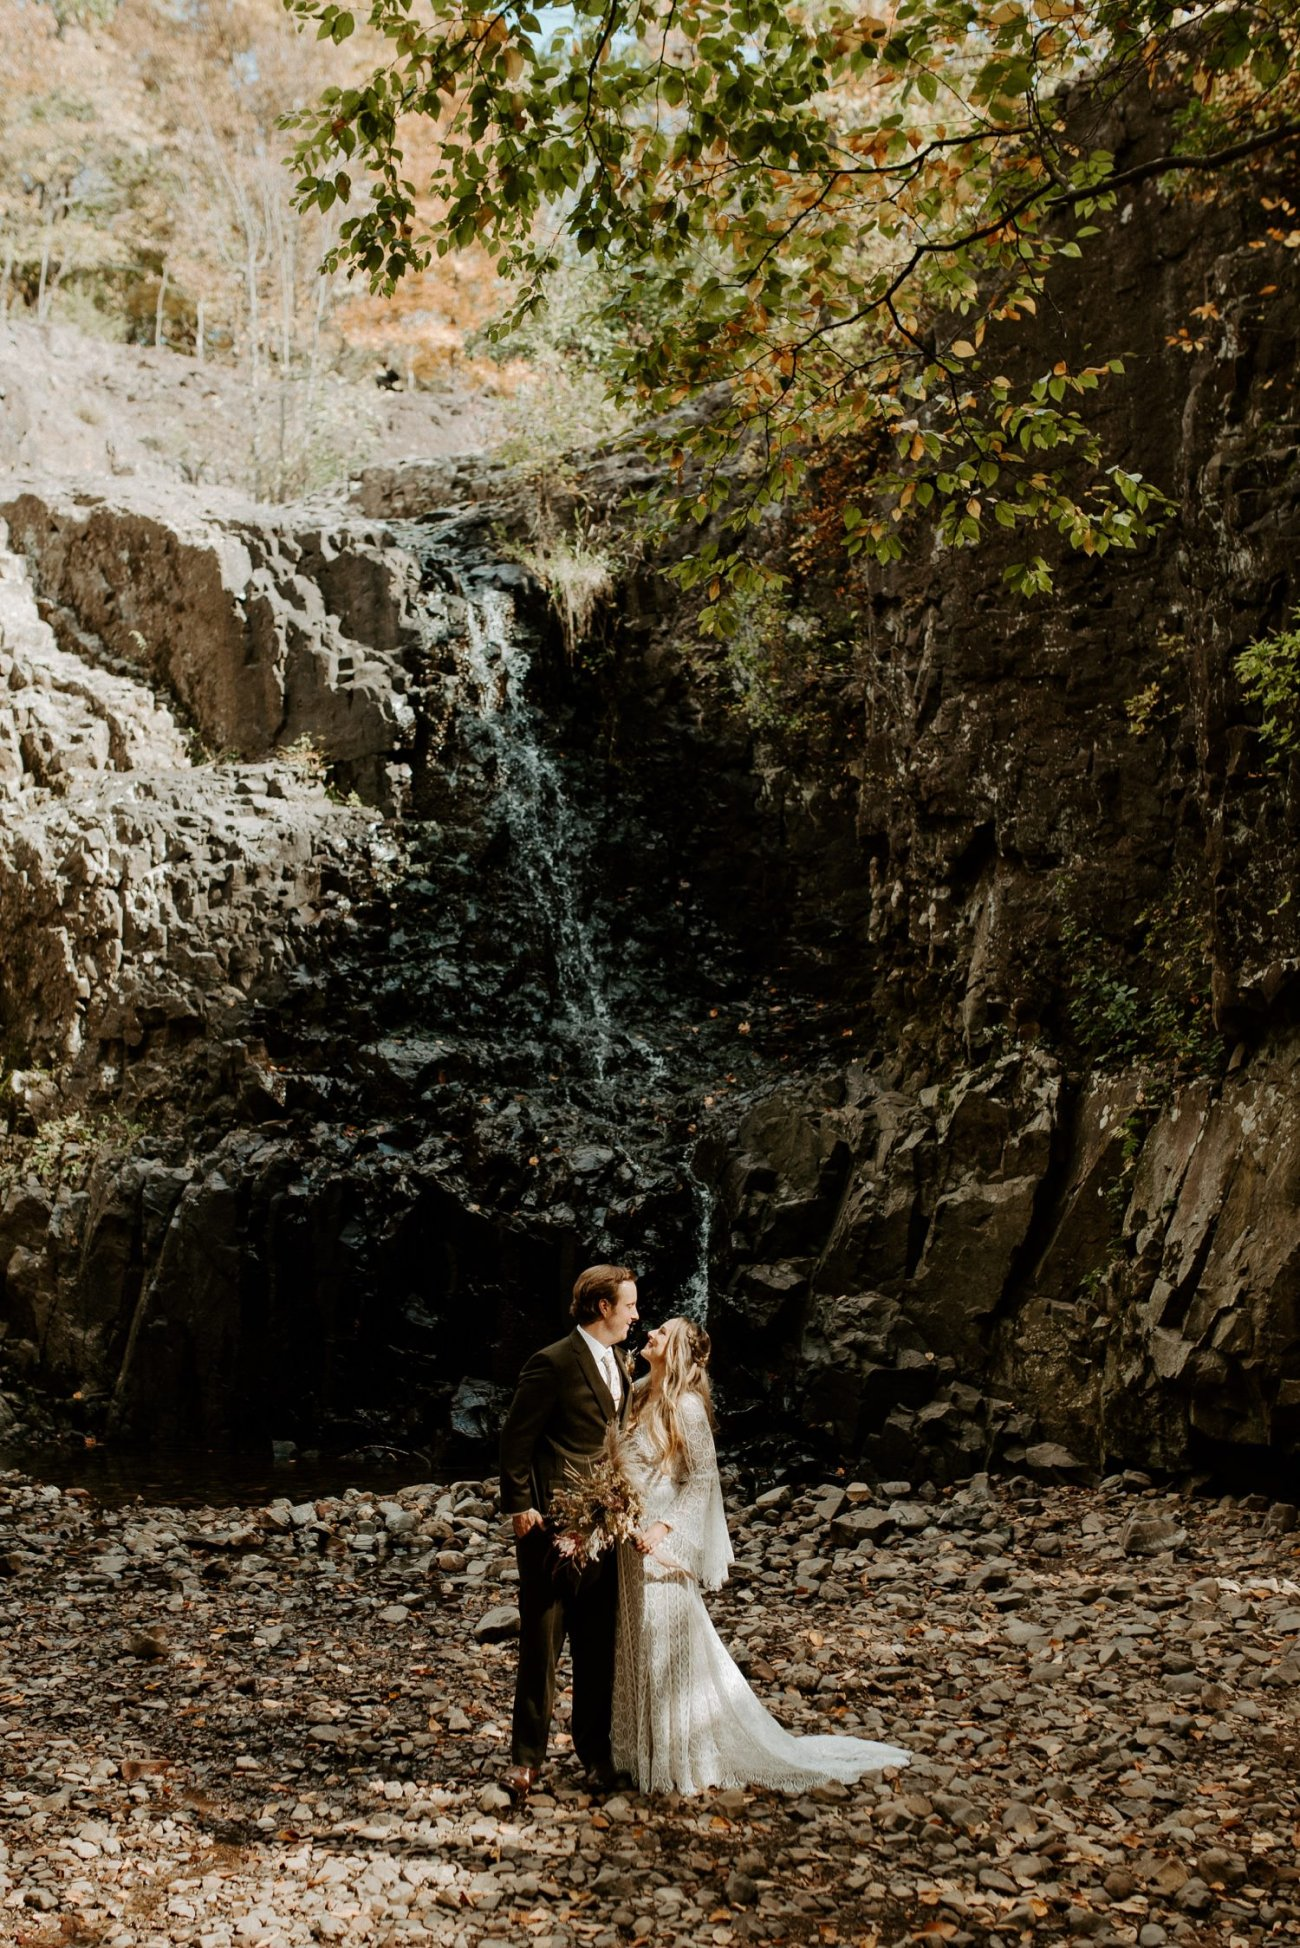 New Jersey Backyard Wedding Vintage Boho Wedding Hemlock Falls NJ Bend Oregon Wedding Phtographer Anais Possamai Photography 006